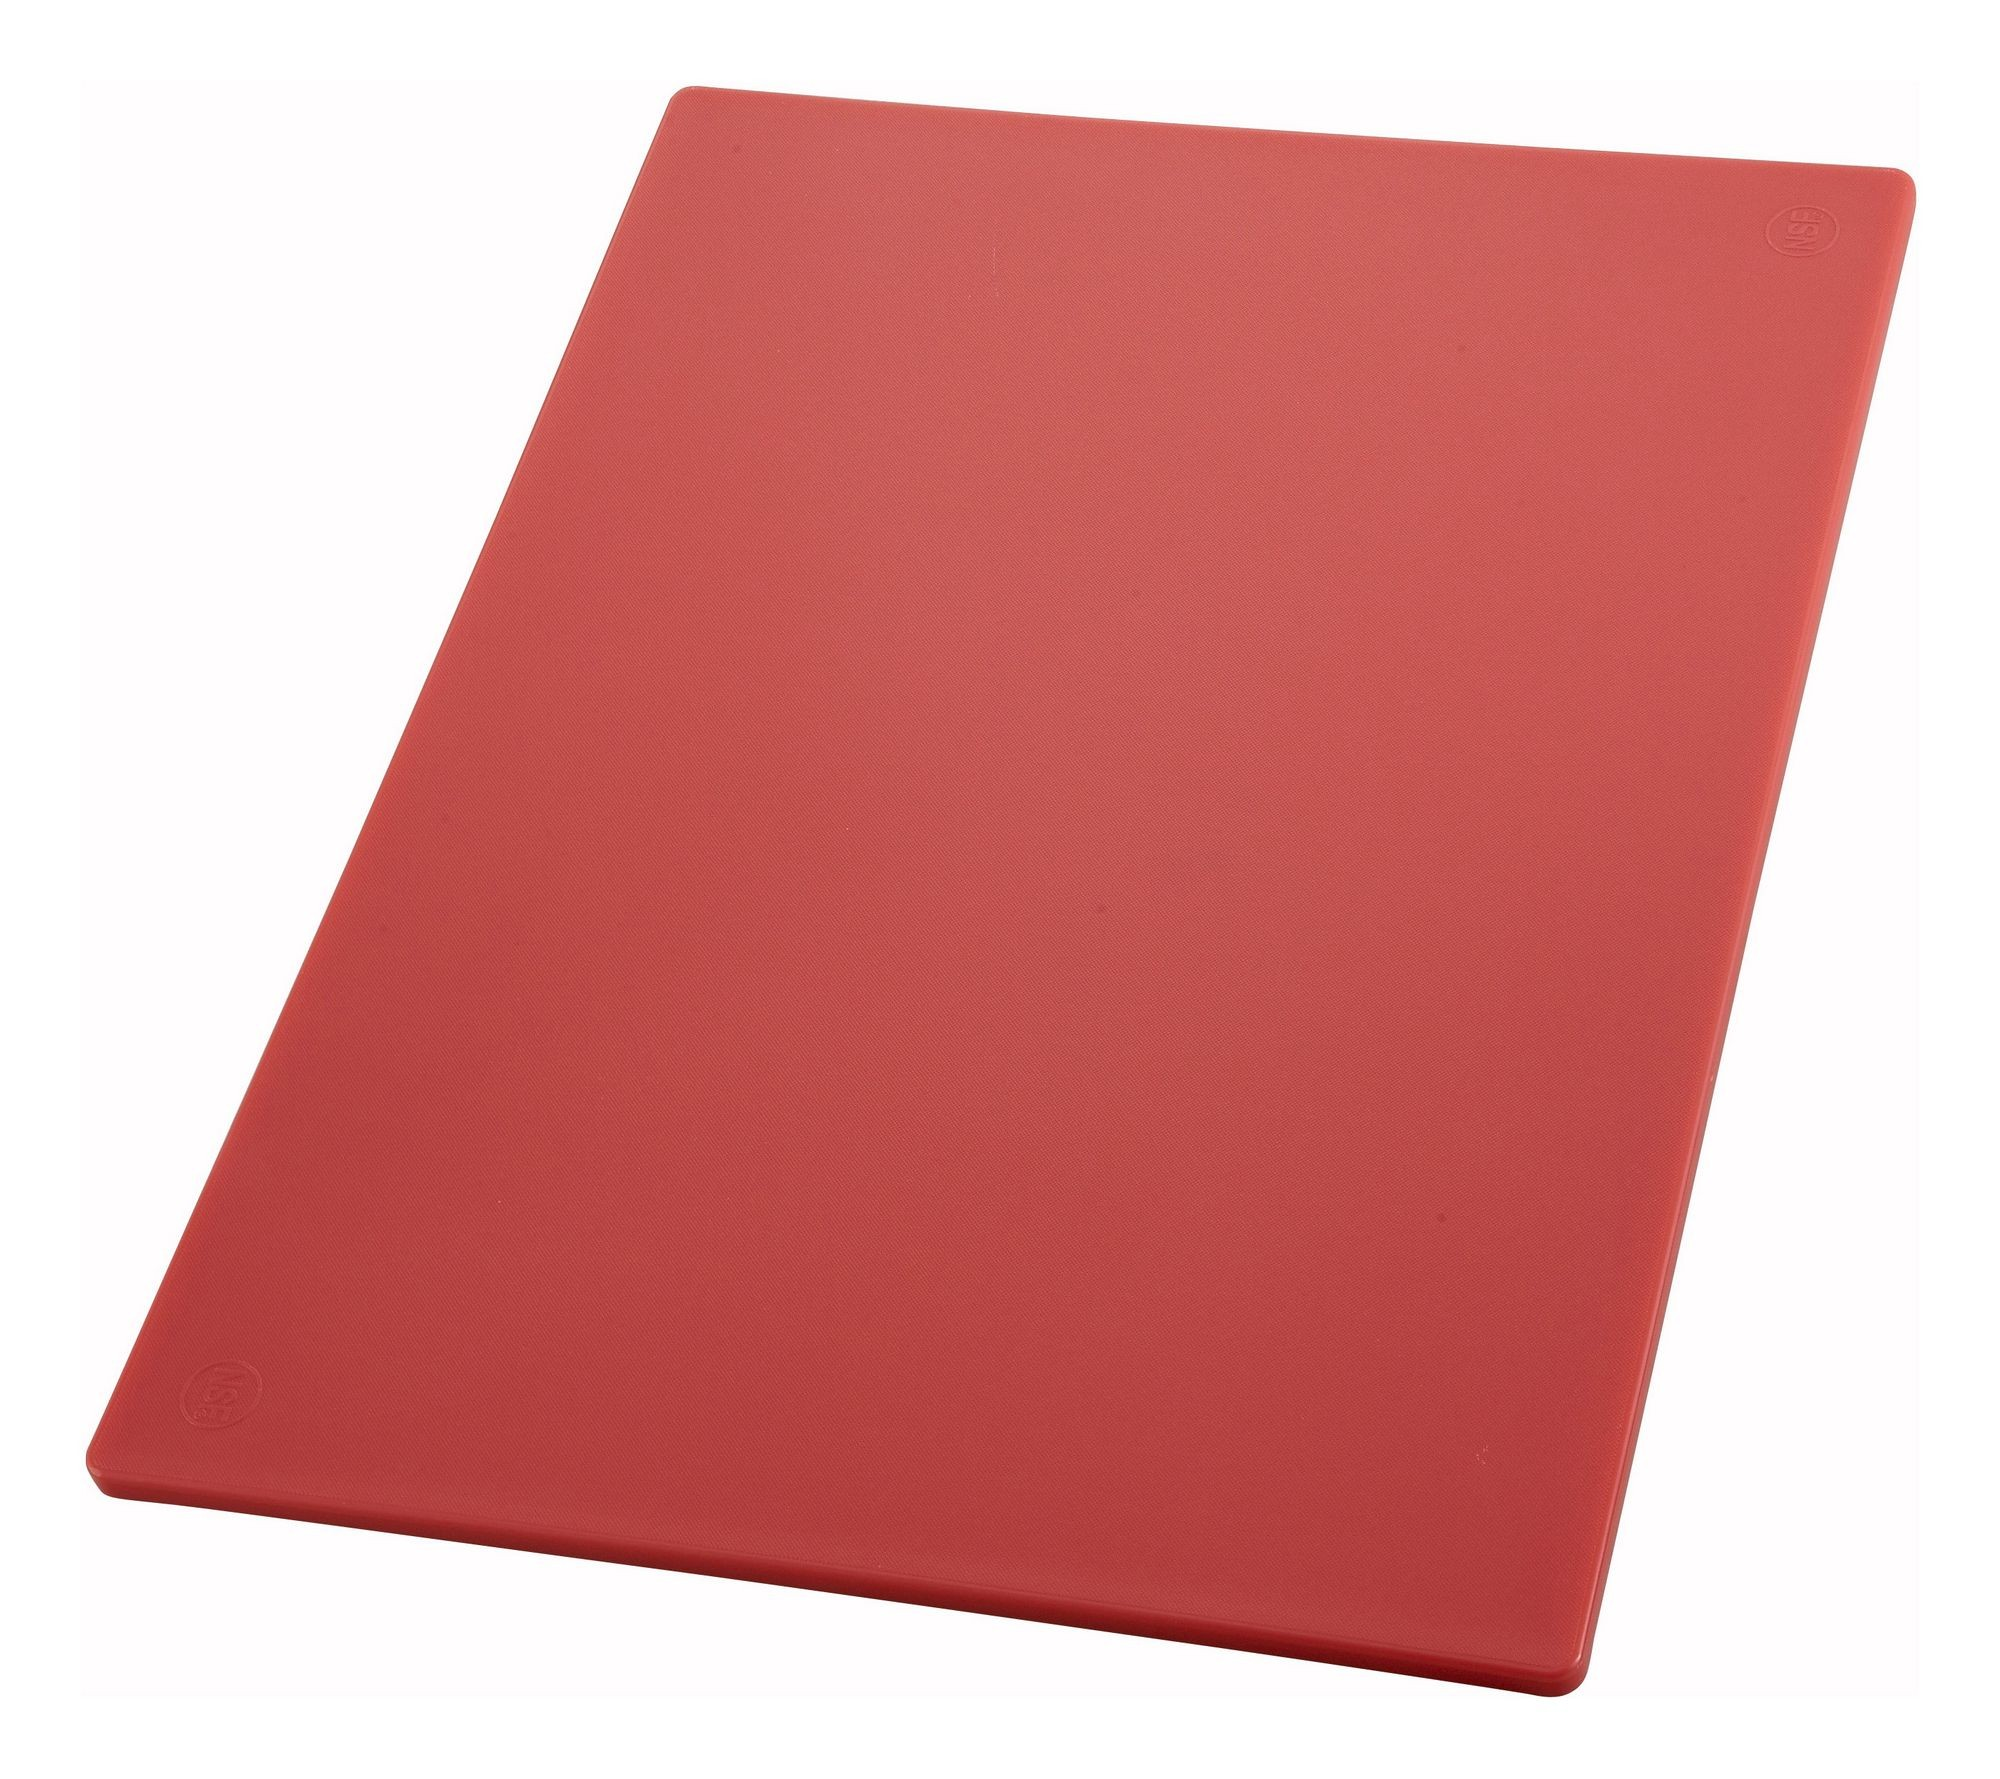 "Winco CBRD-1218 Red Plastic Cutting Board 12"" x 18"" x 1/2"""